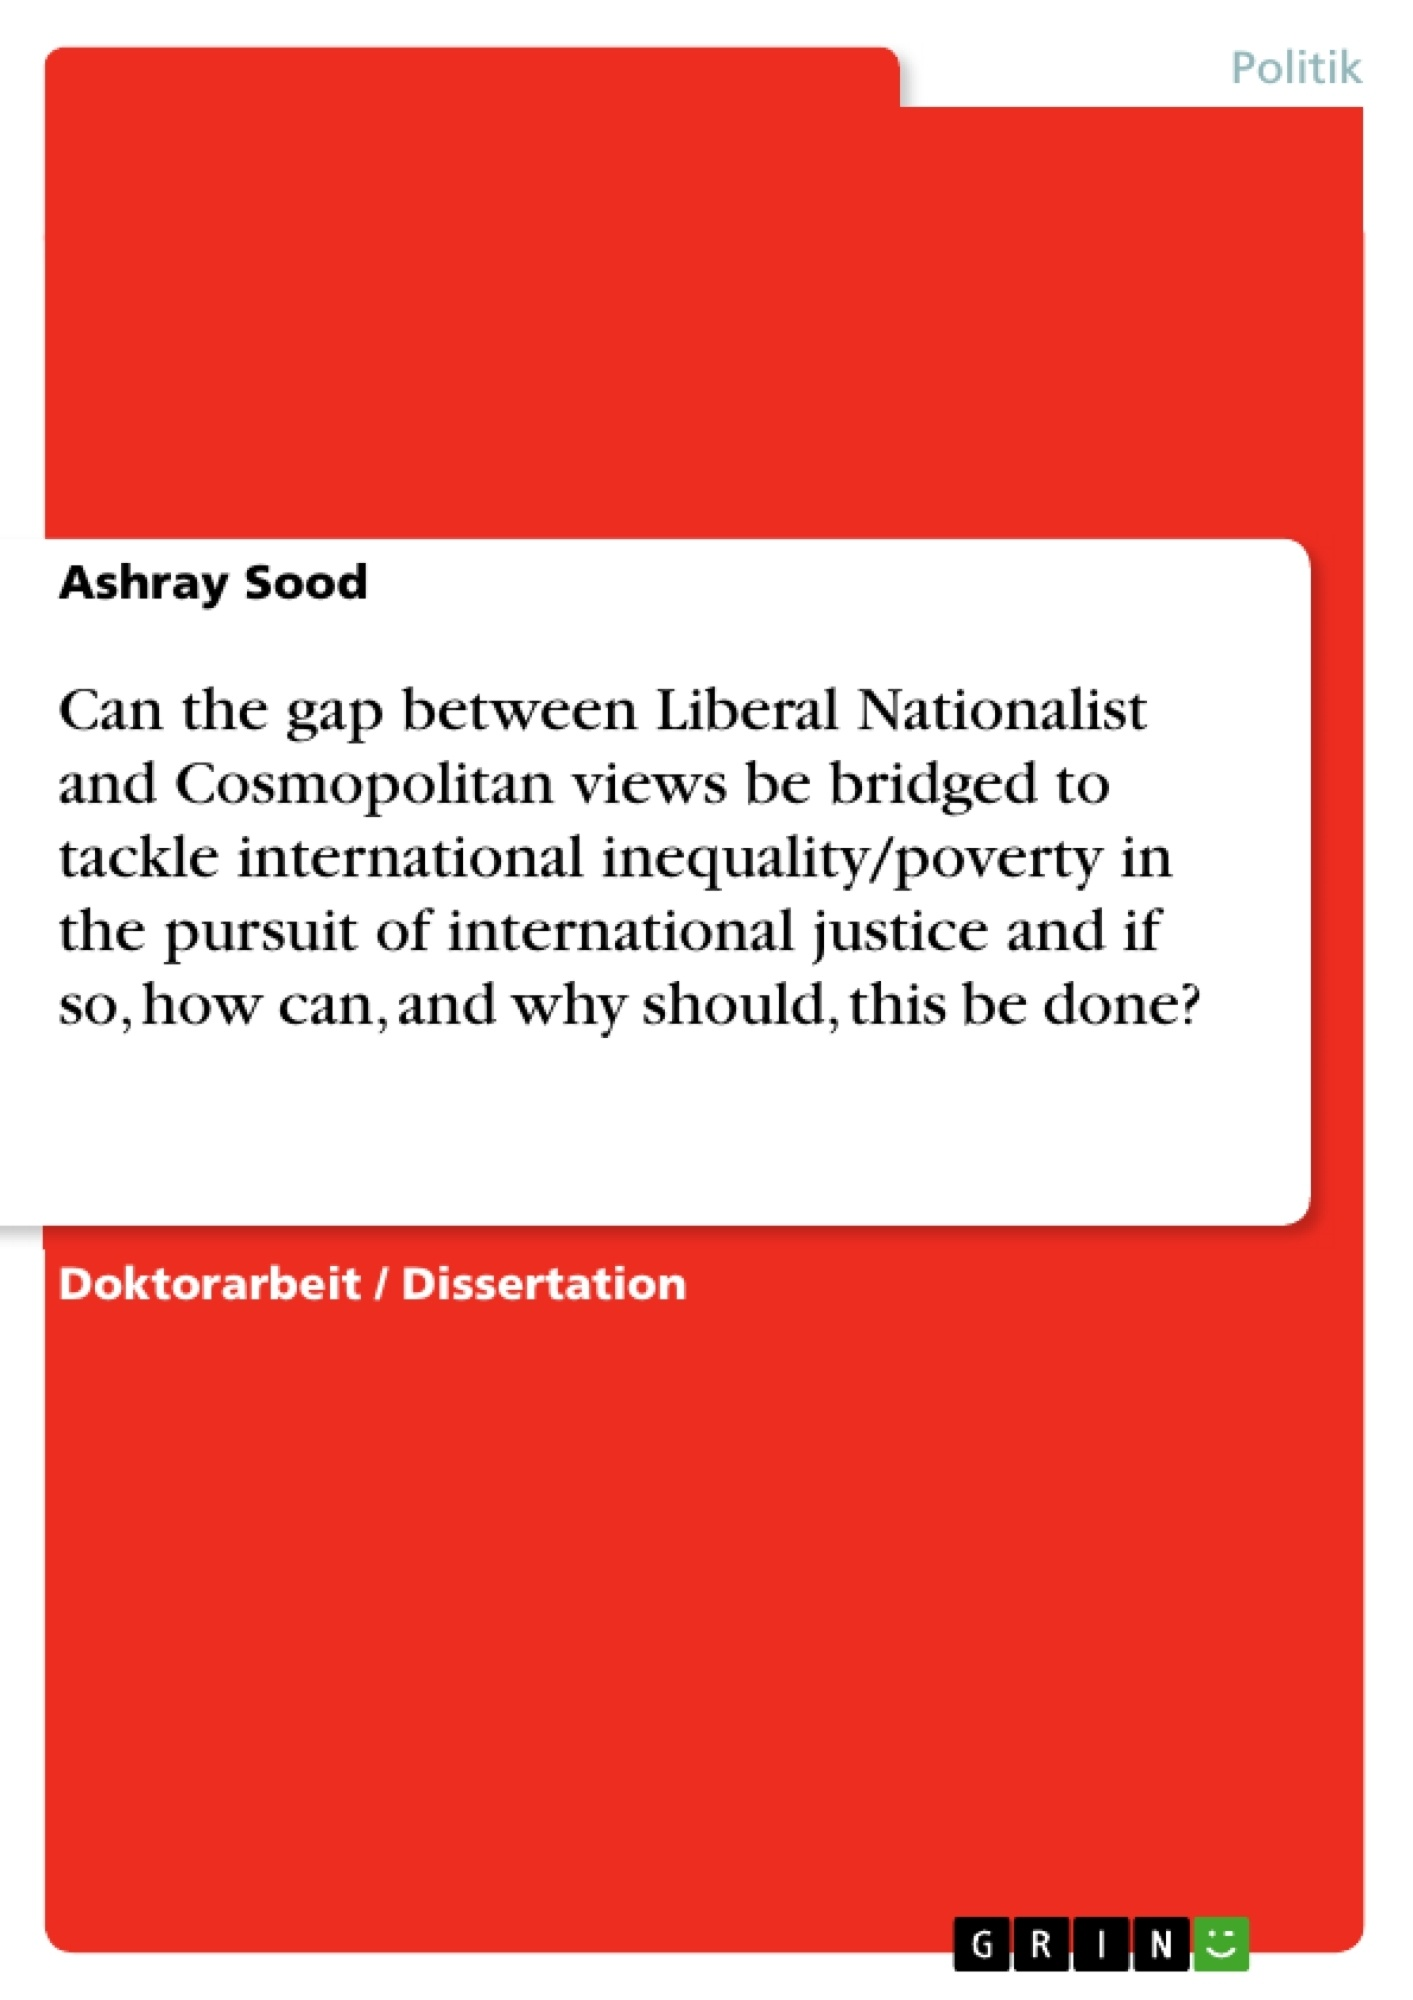 Titel: Can the gap between Liberal Nationalist and Cosmopolitan views be bridged to tackle international inequality/poverty in the pursuit of international justice and if so, how can, and why should, this be done?